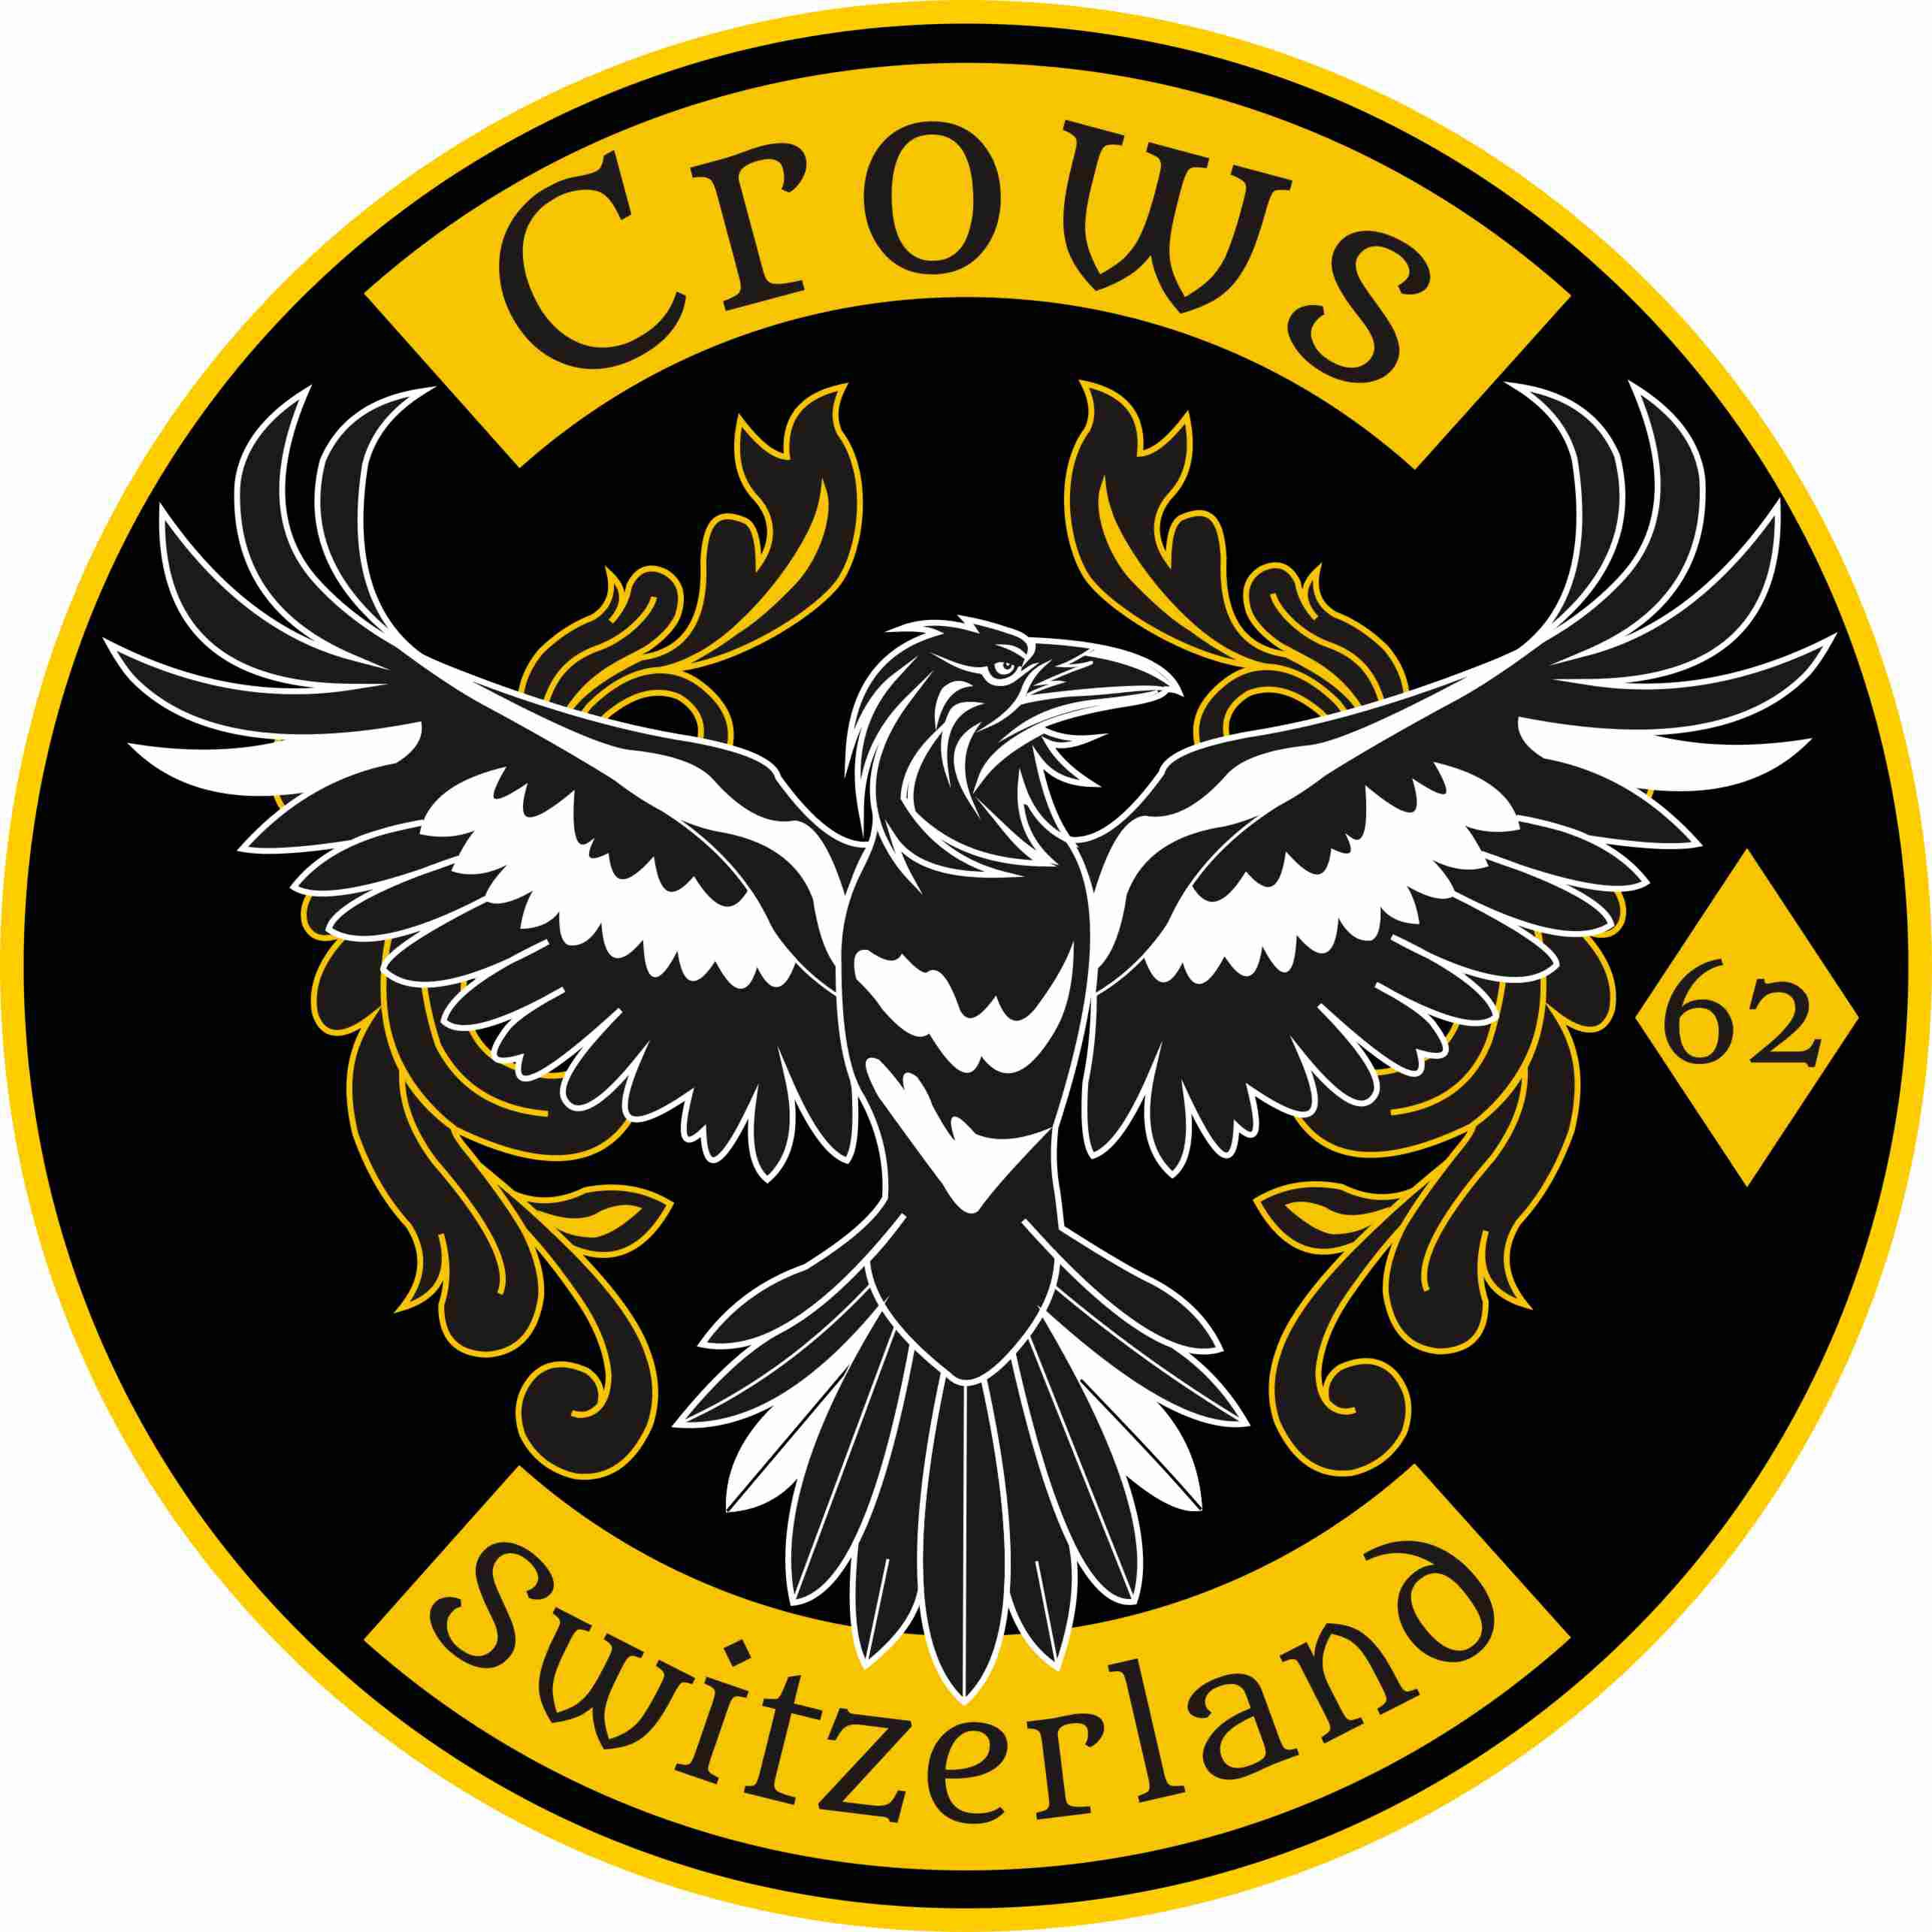 Crows Free Biker Switzerland